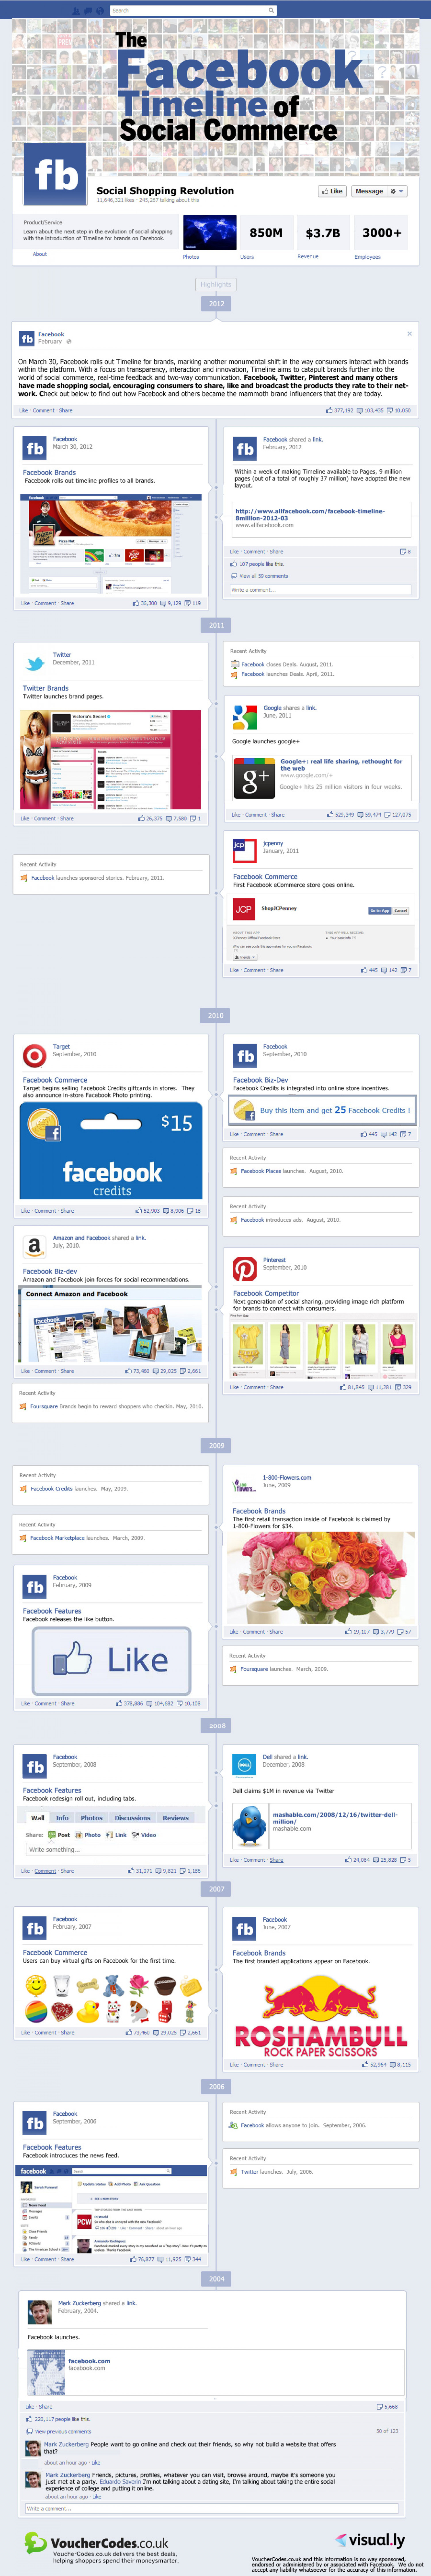 The Facebook Timeline of Social Commerce Infographic